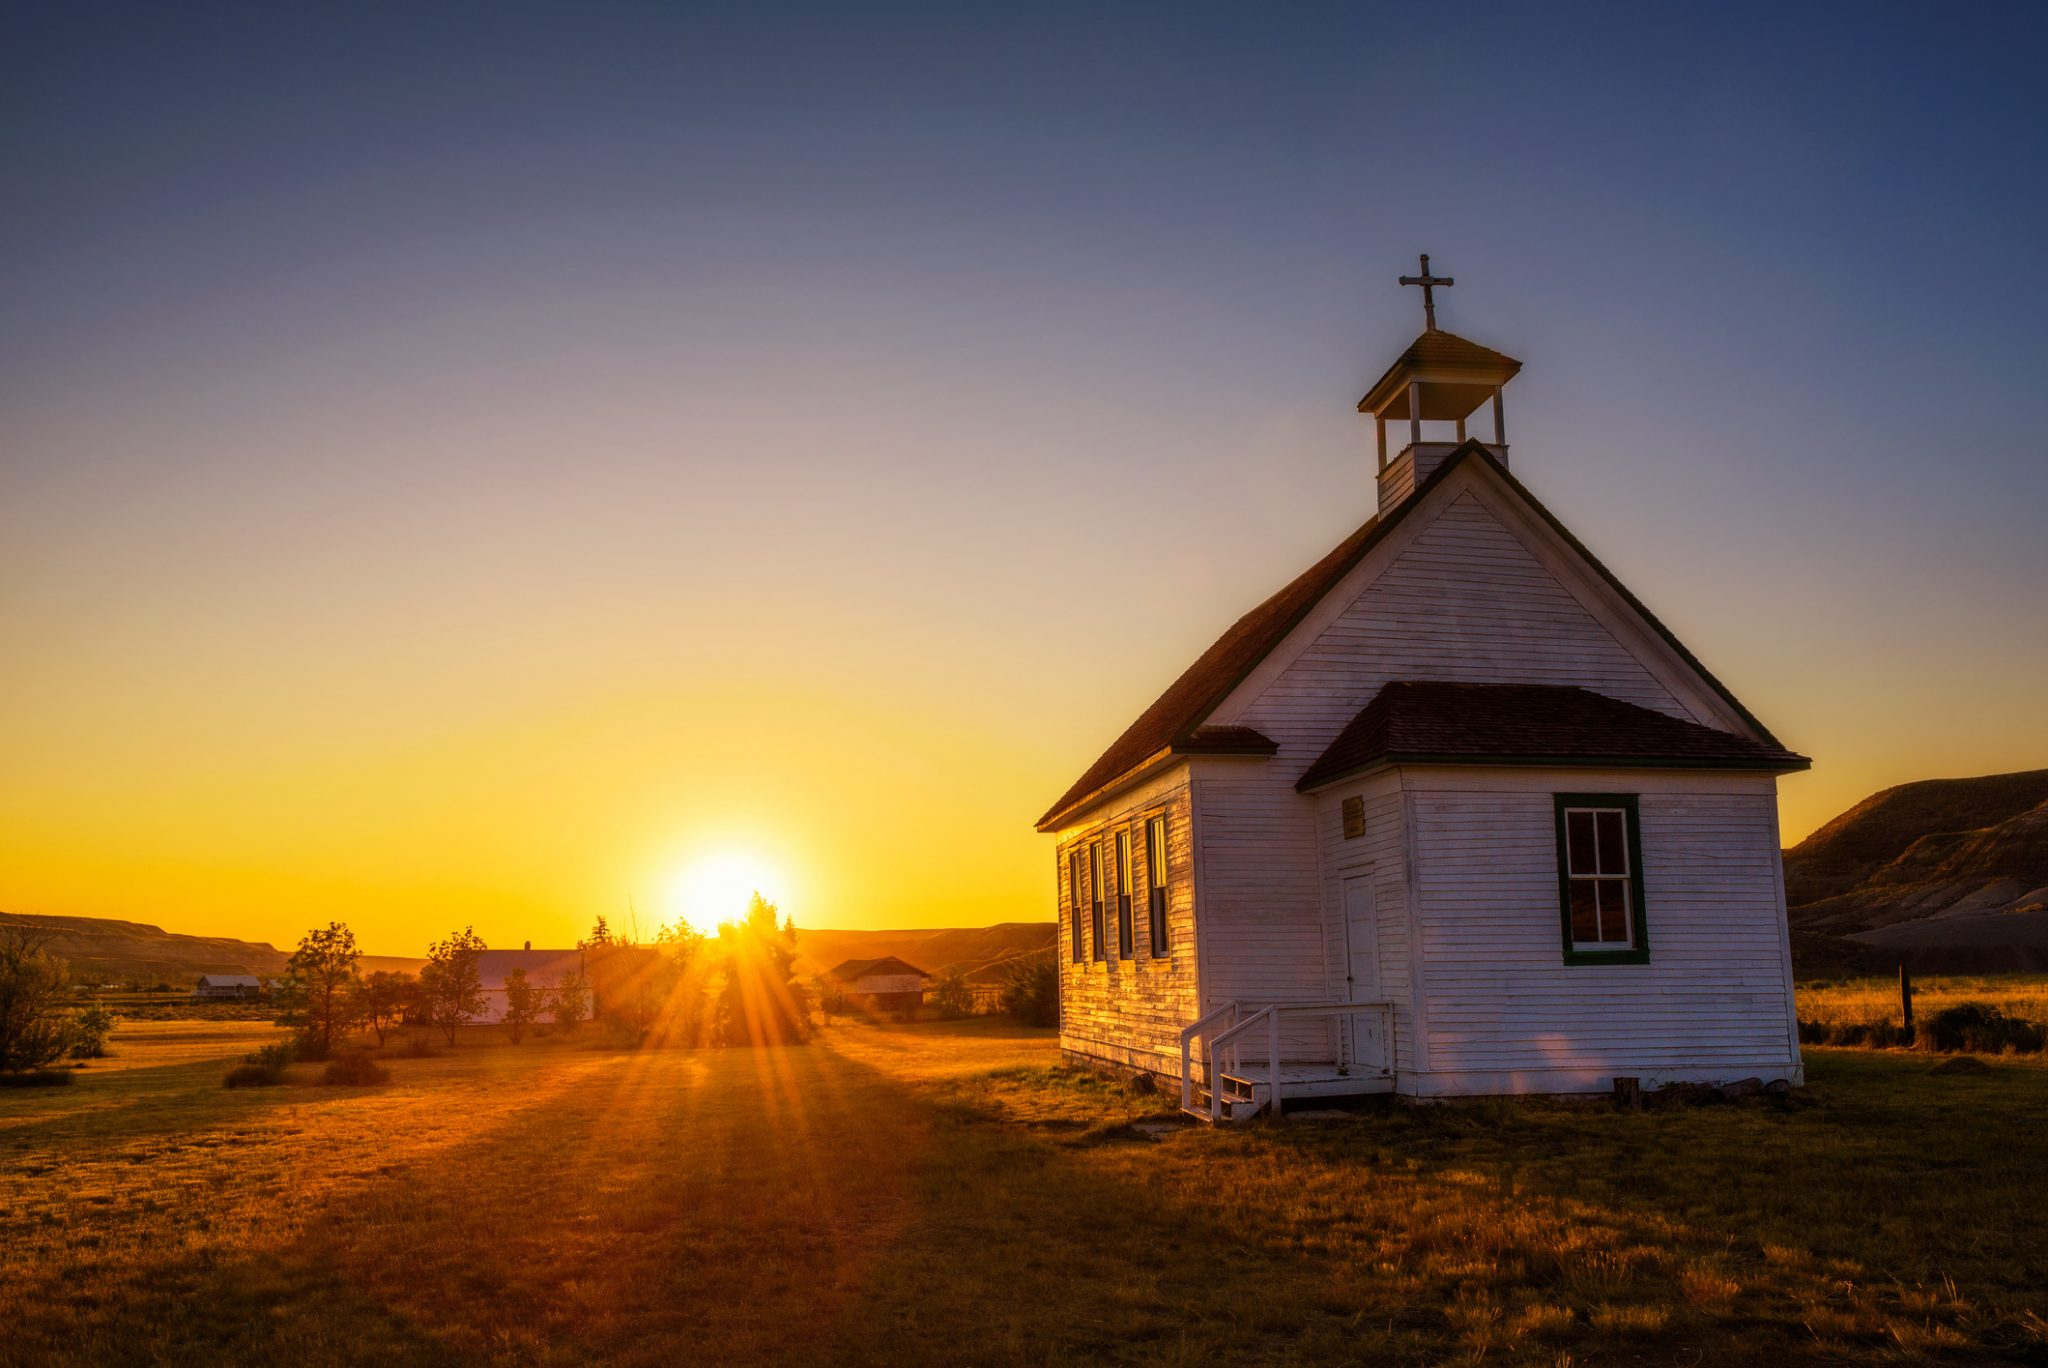 Summer Sunset Over The Old Wooden Pioneer Church In The Ghost Town Of Dorothy In Alberta, Canada Representing